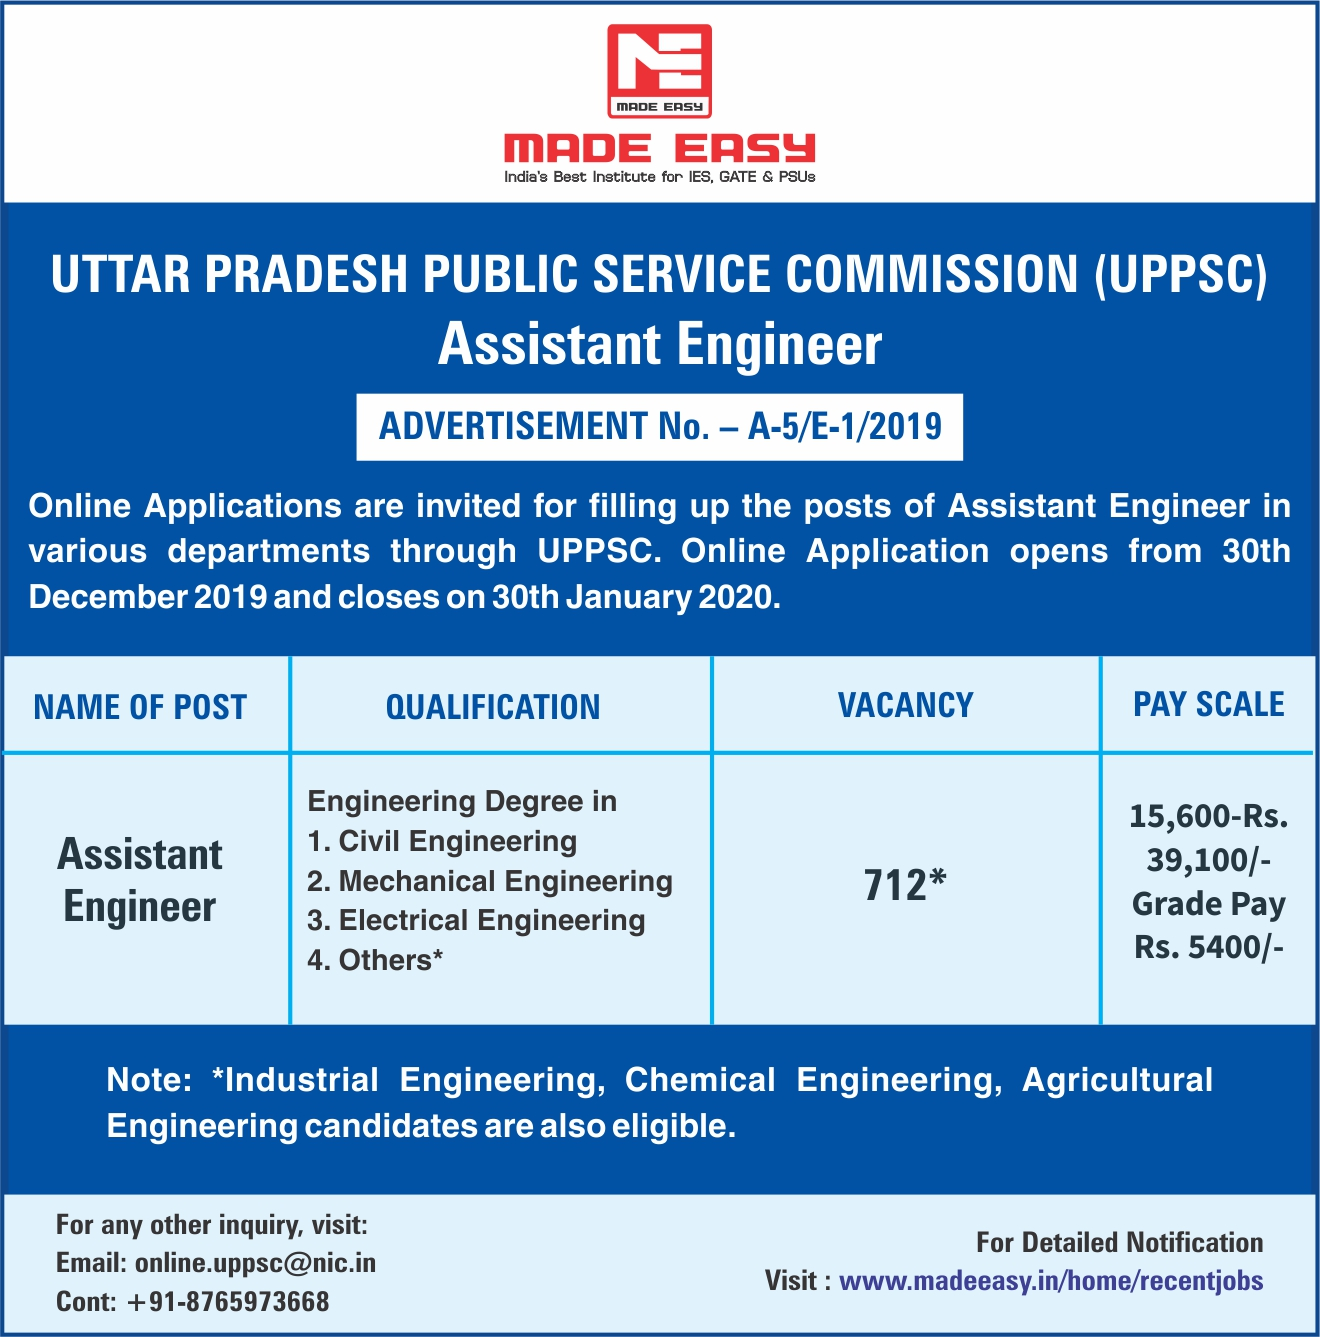 Uppsc Ae Recruitment 2020 For 712 Posts Of Assistant Engineer